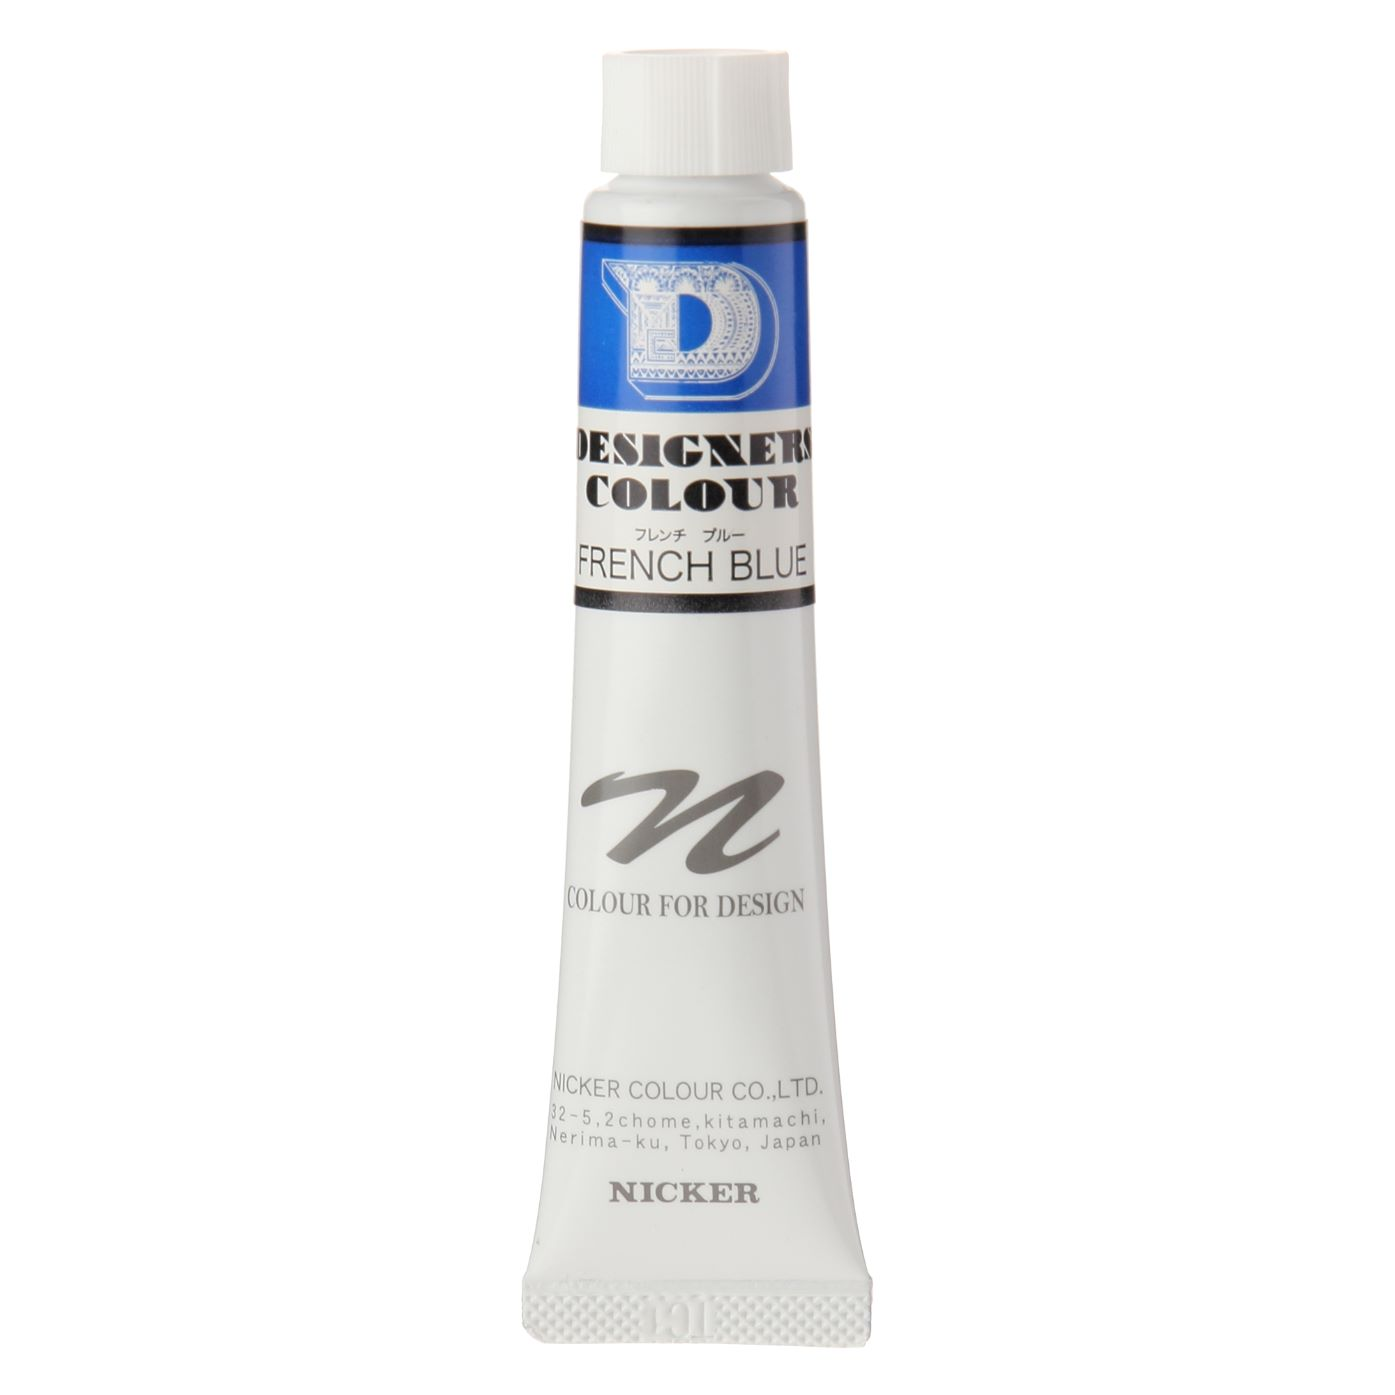 DESIGNERS COLOUR 20ml 538 FRENCH BLUE